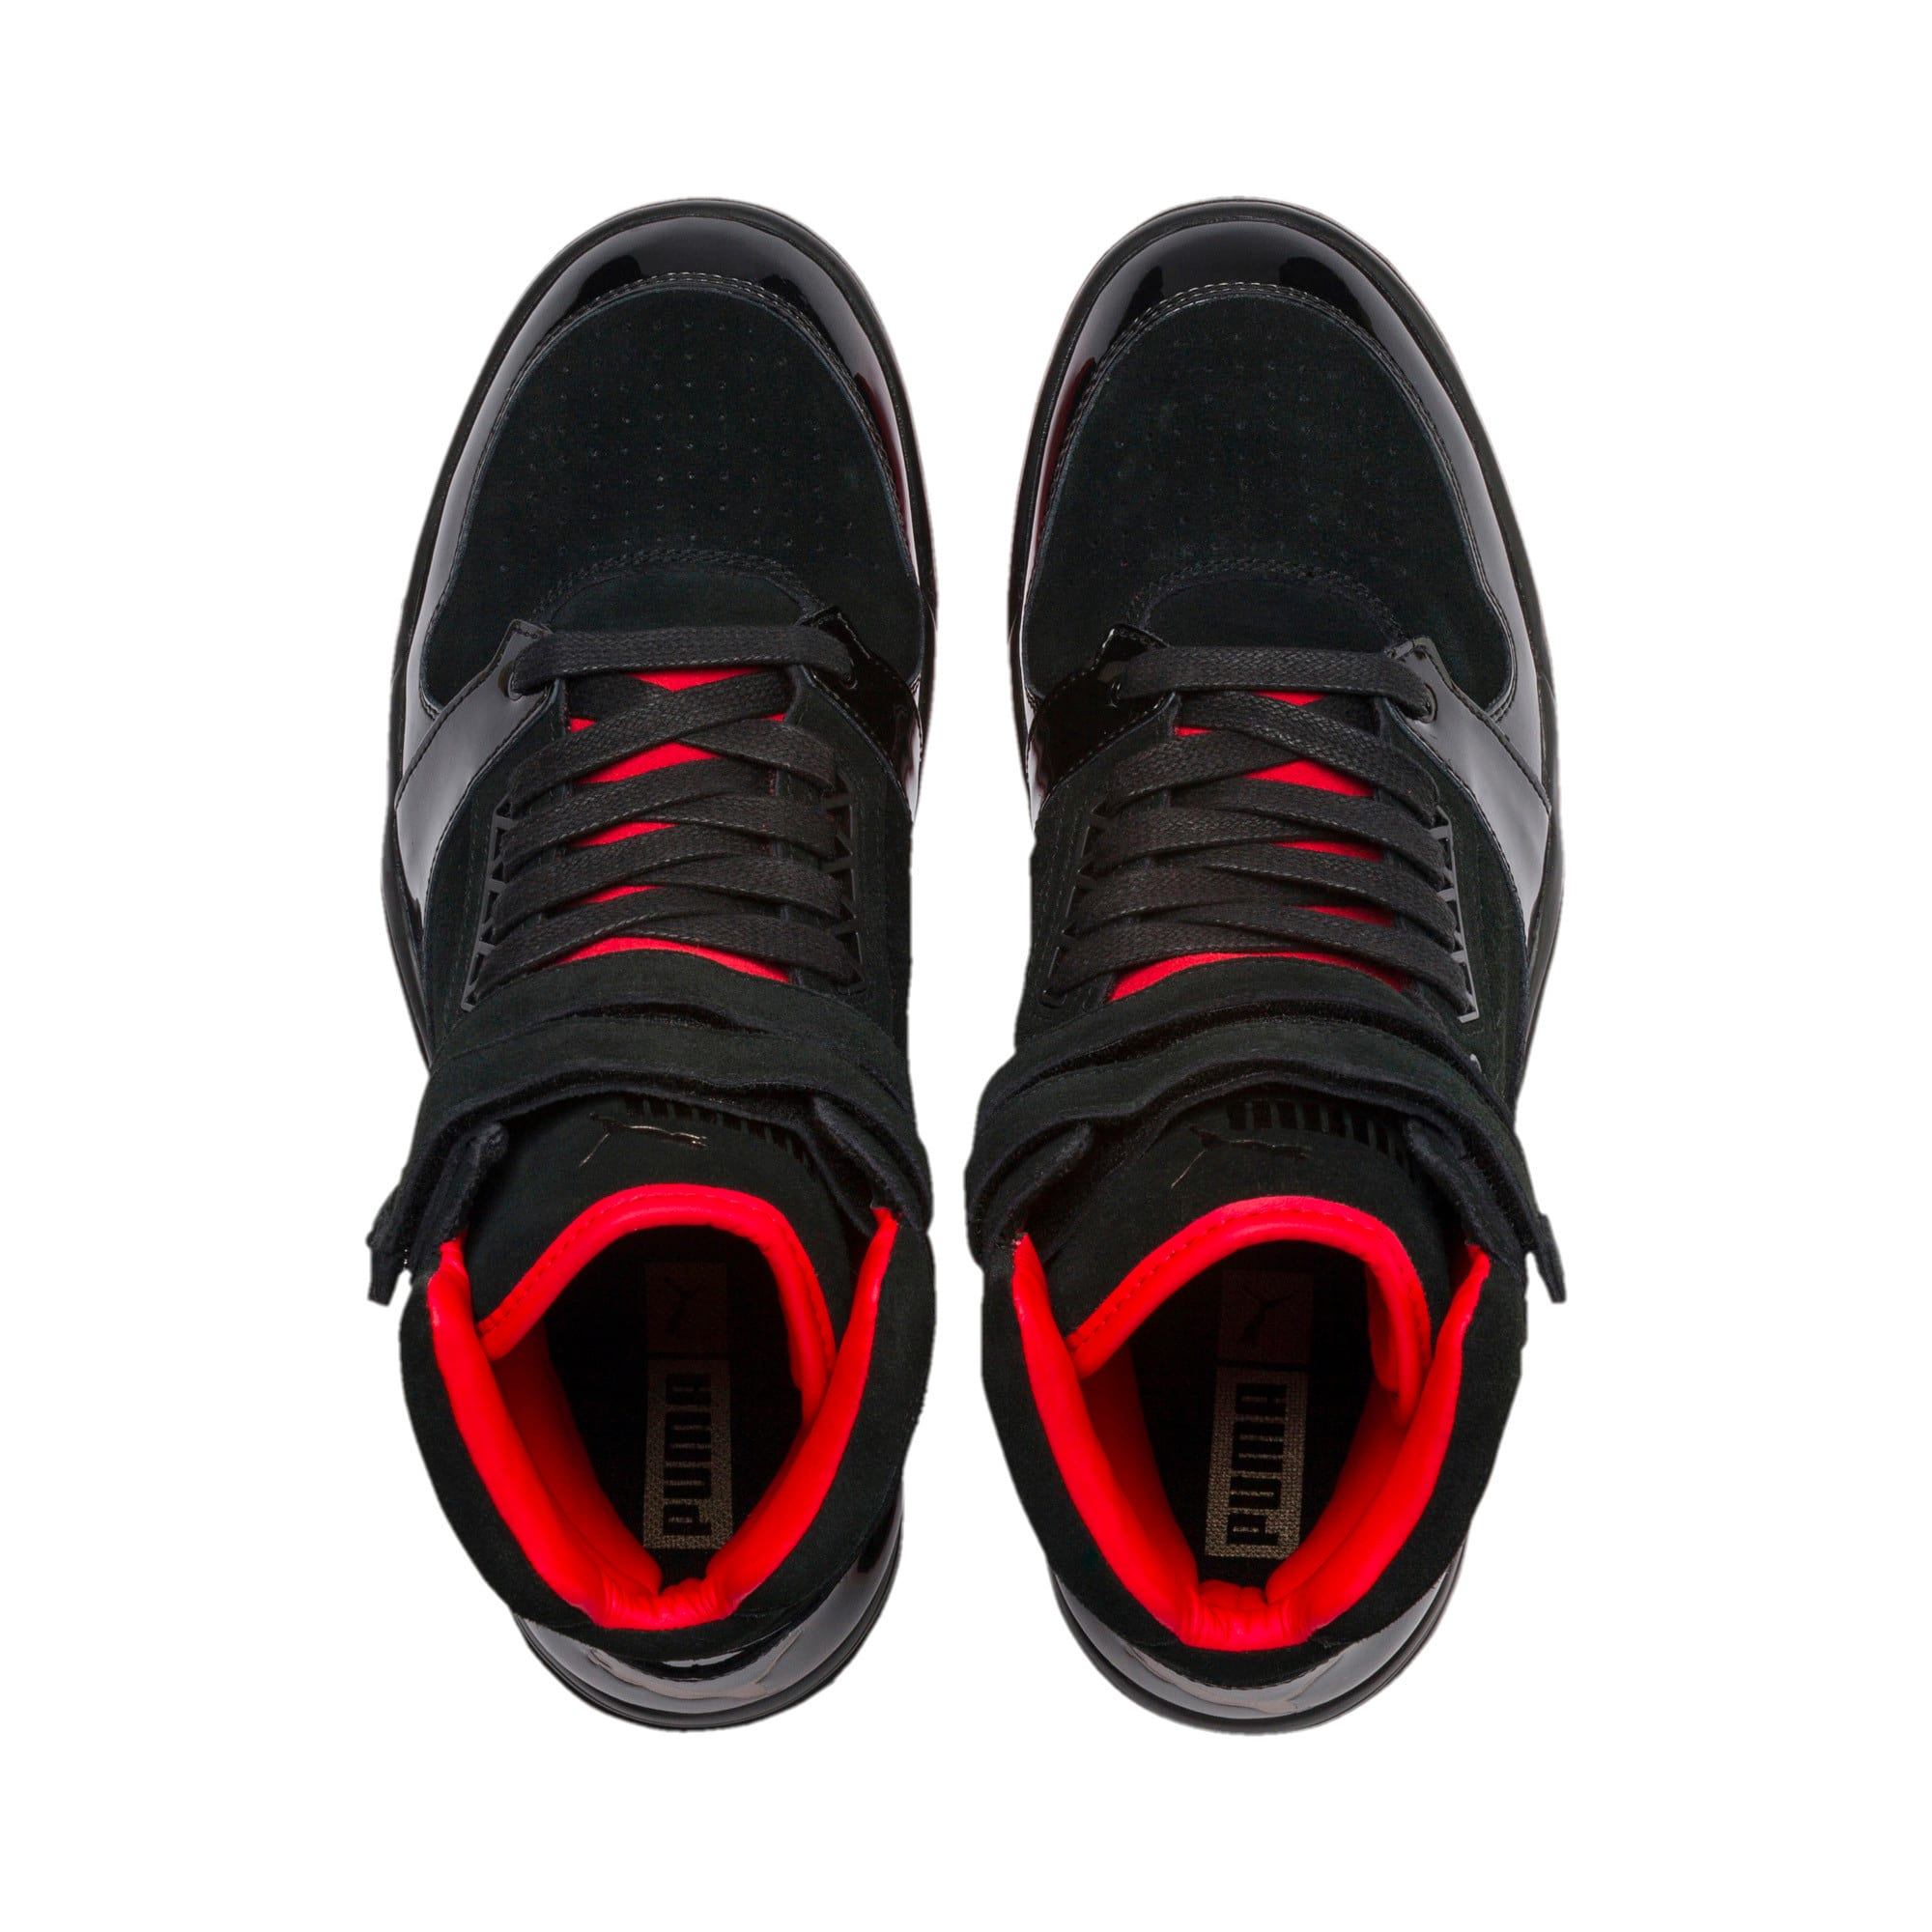 Thumbnail 4 of Palace Guard Red Carpet Mid-Cut Basketball Shoes, Puma Black-Risk Red-Bronze, medium-IND